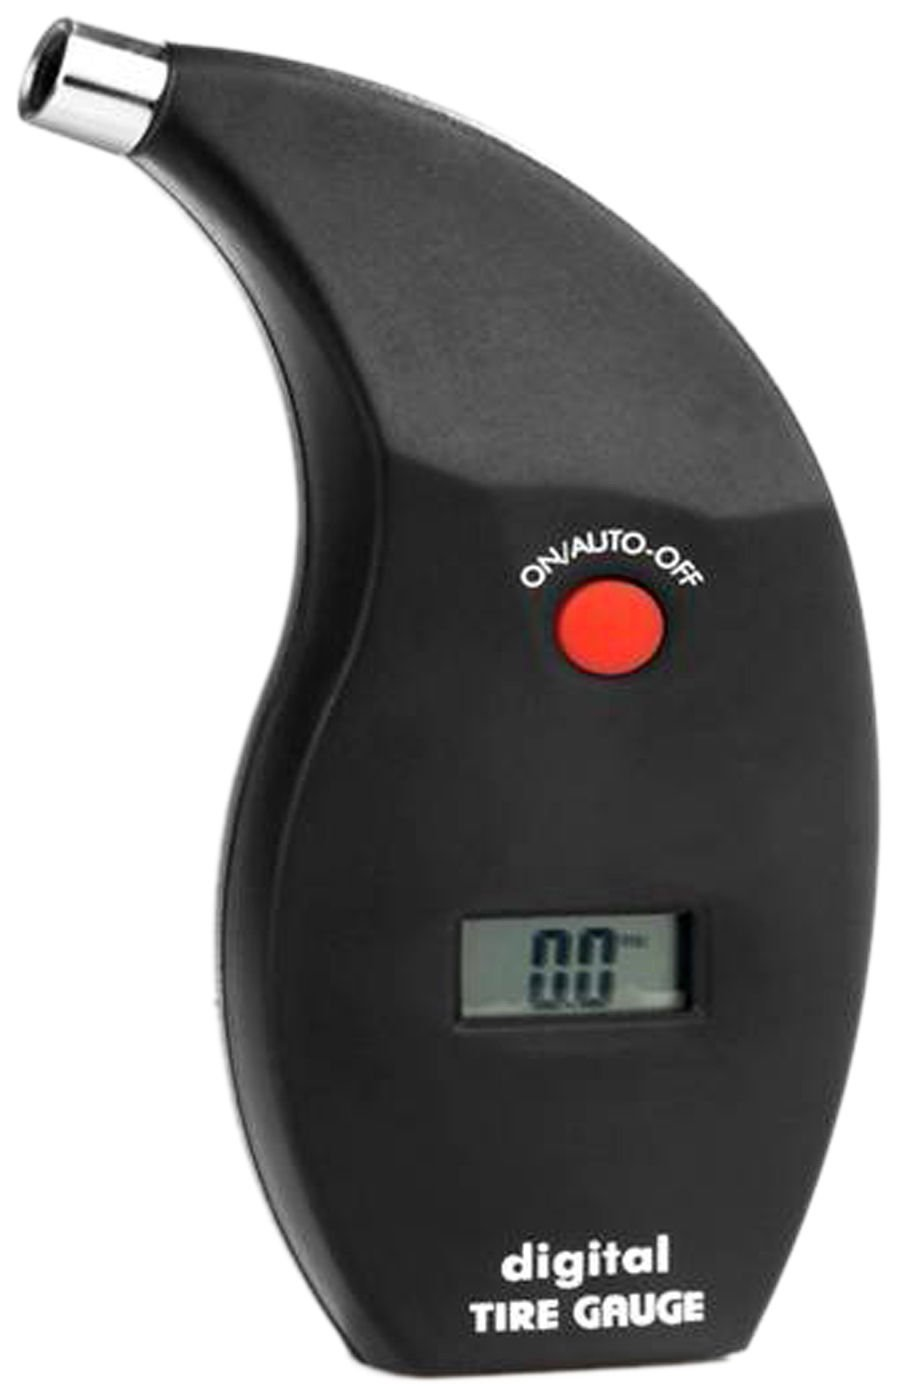 PrimeTrendz TM Talking Tire Digital Pressure Gauge - Protect Your Tires and Monitor Tire Pressure. For Your Car, Bicycle, or Motorcycle By USA CASH AND CARRY … PT-TTG4341